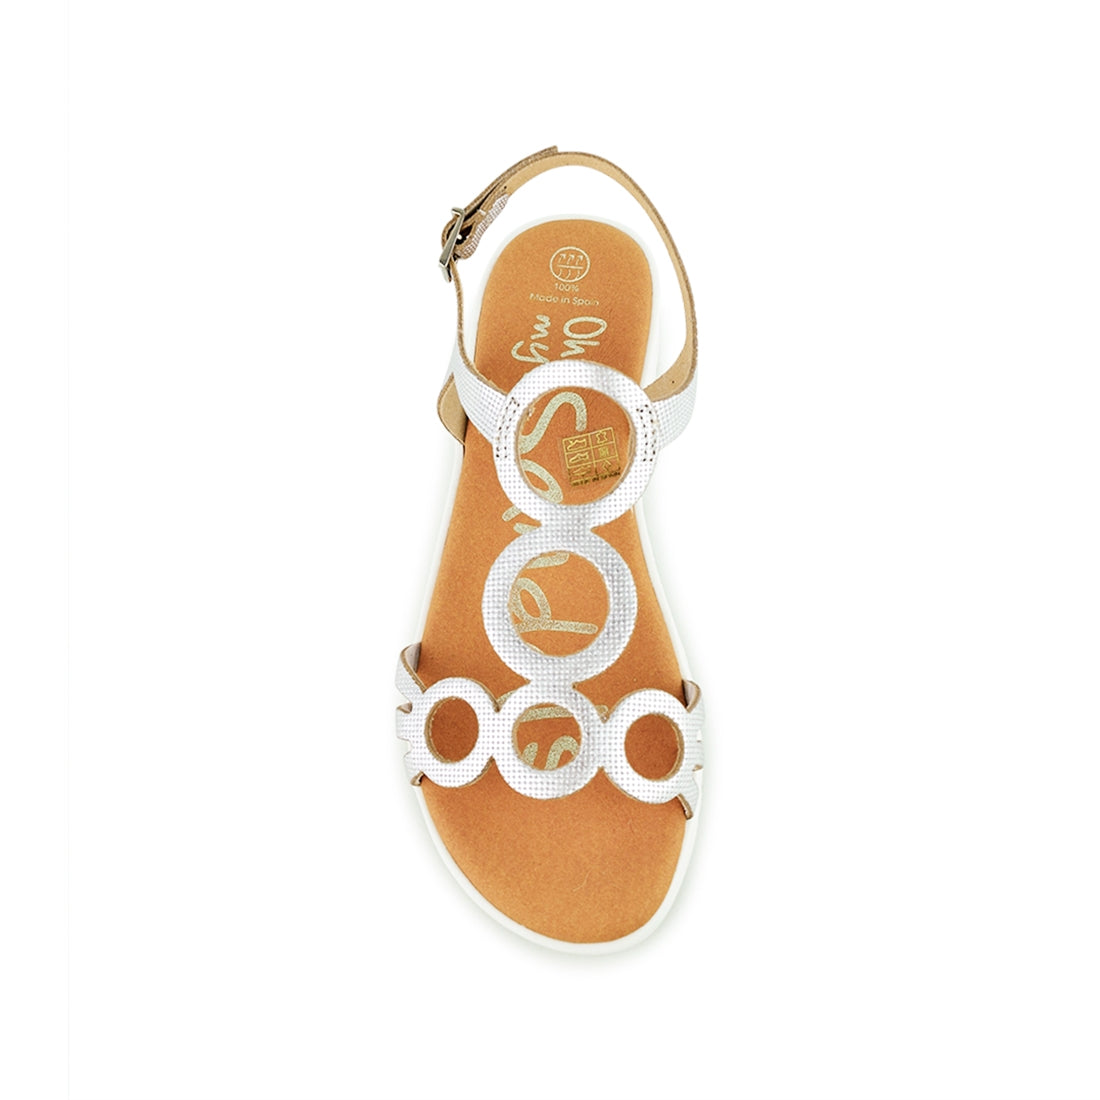 OLLIE - Oh My Sandals Sandal Silver Print